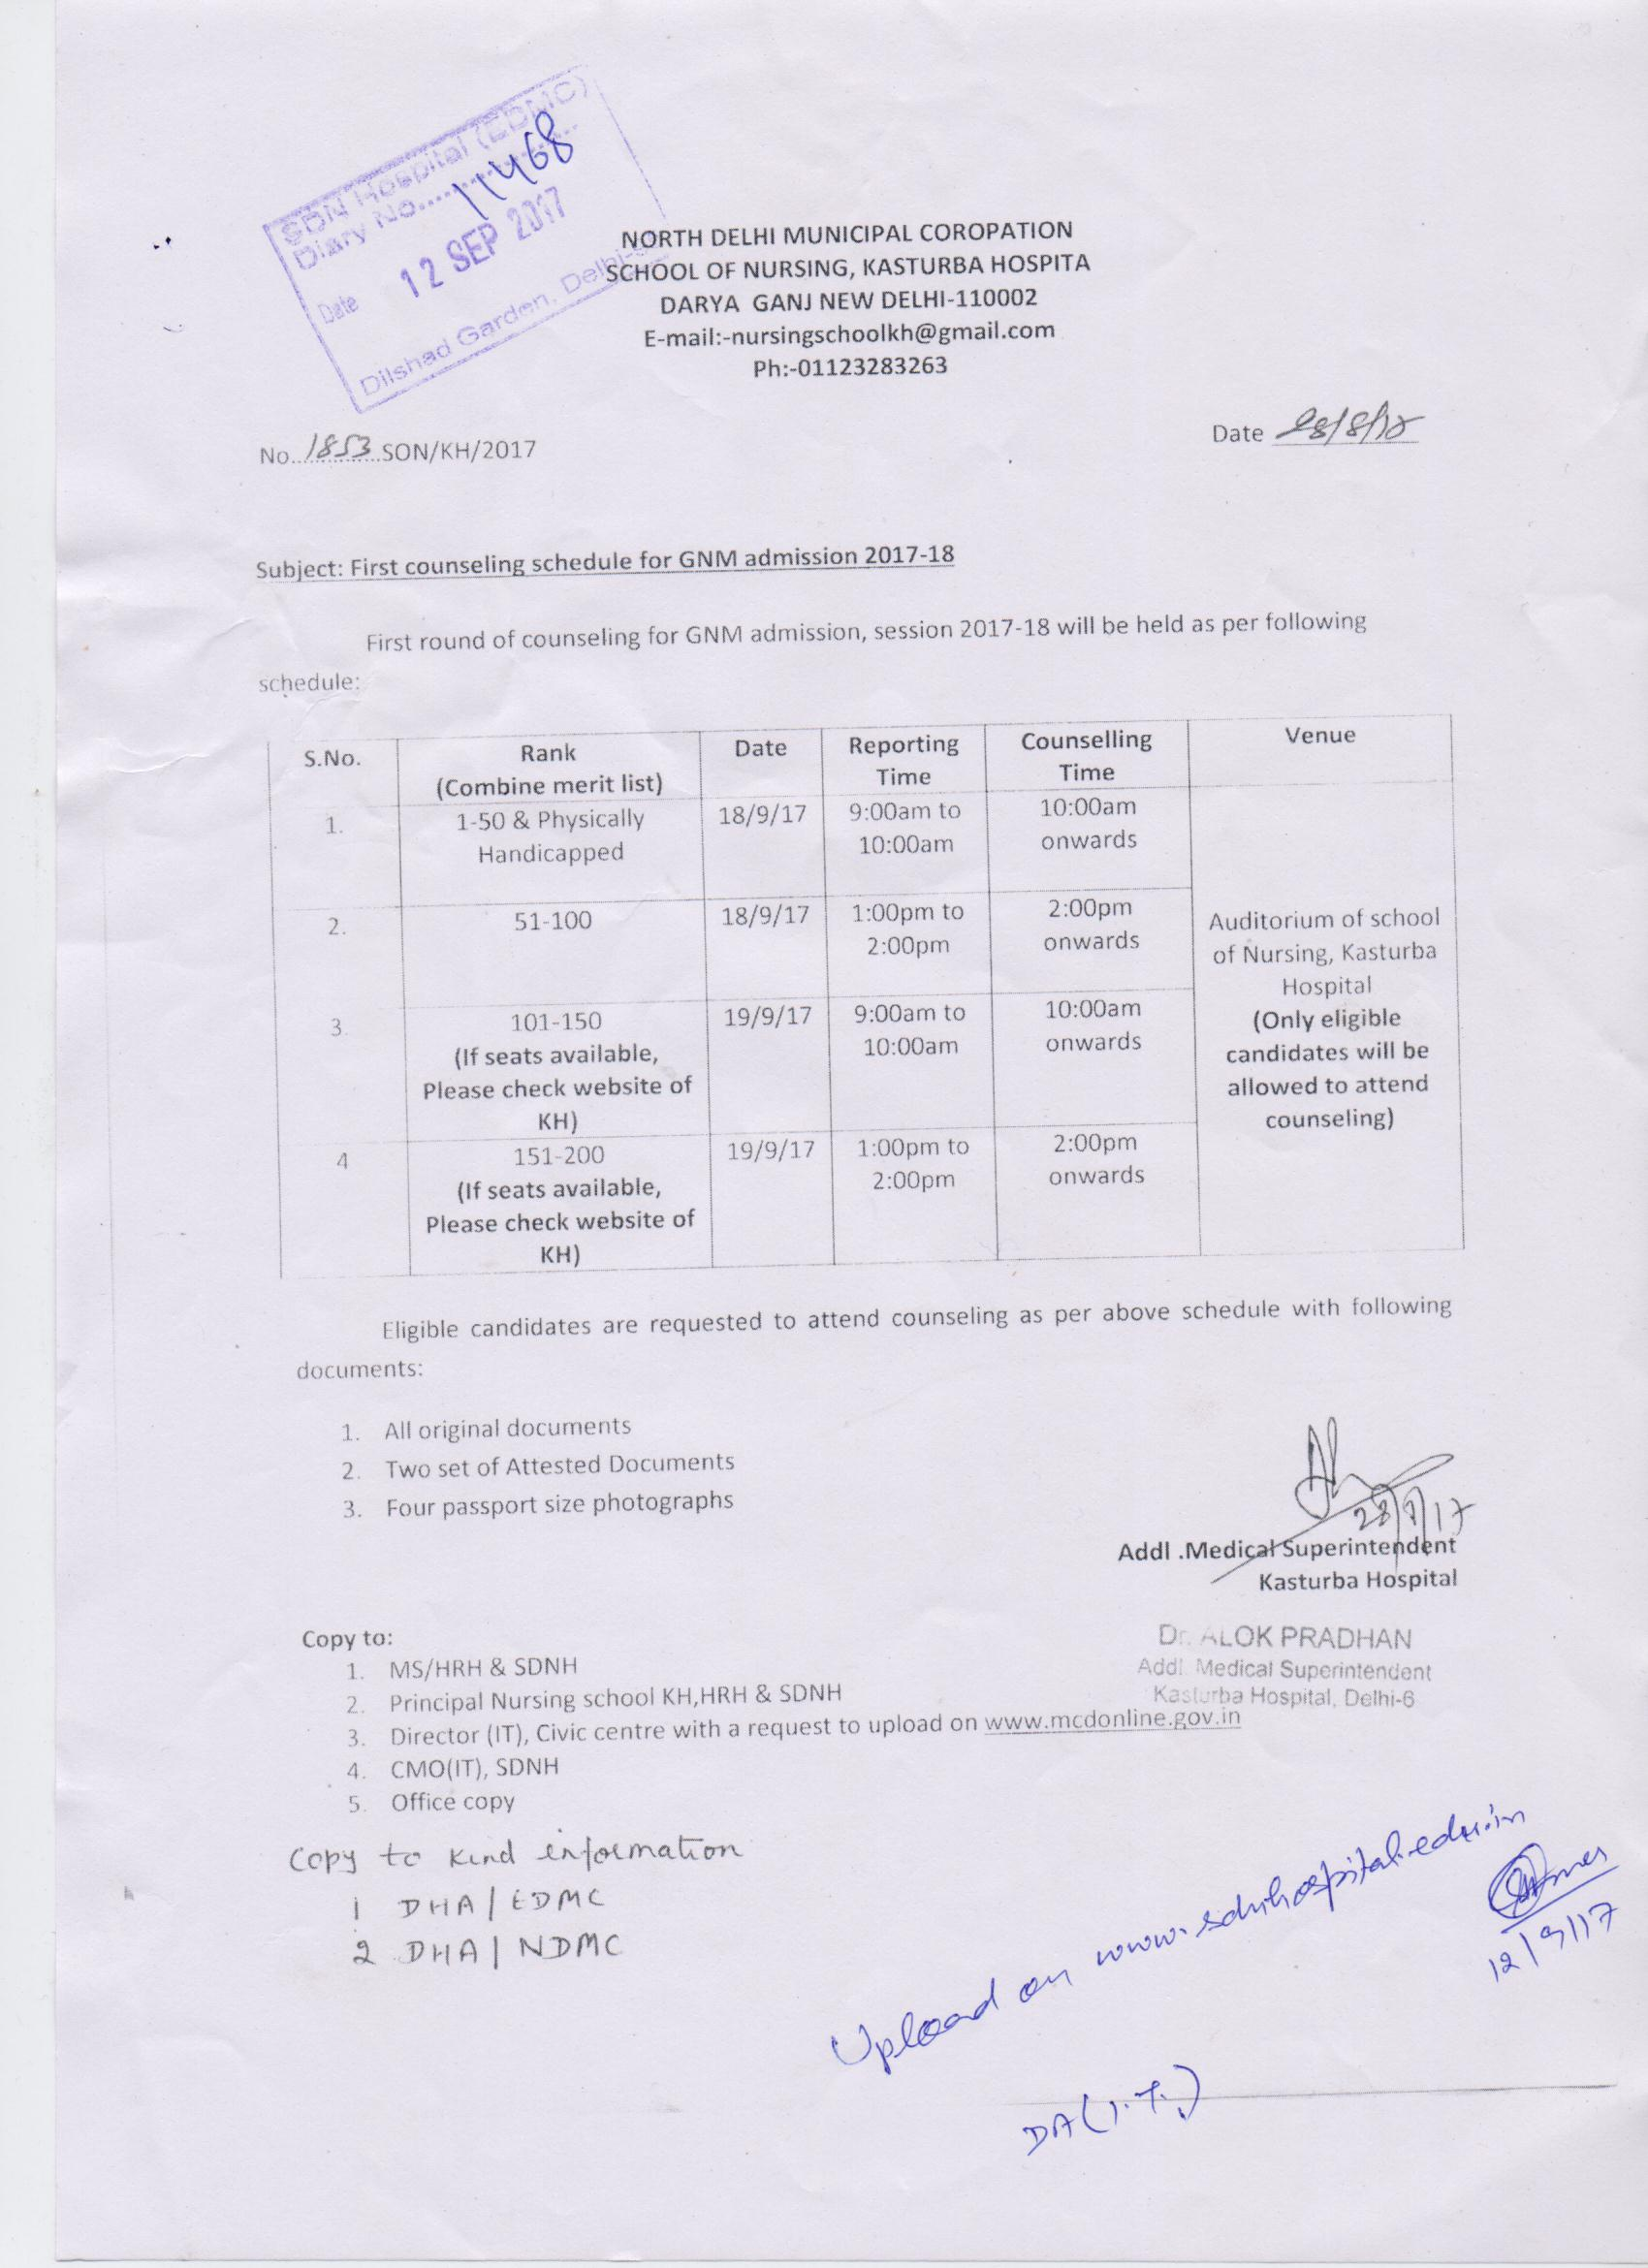 First counseling schedule for GNM admission 2017-18